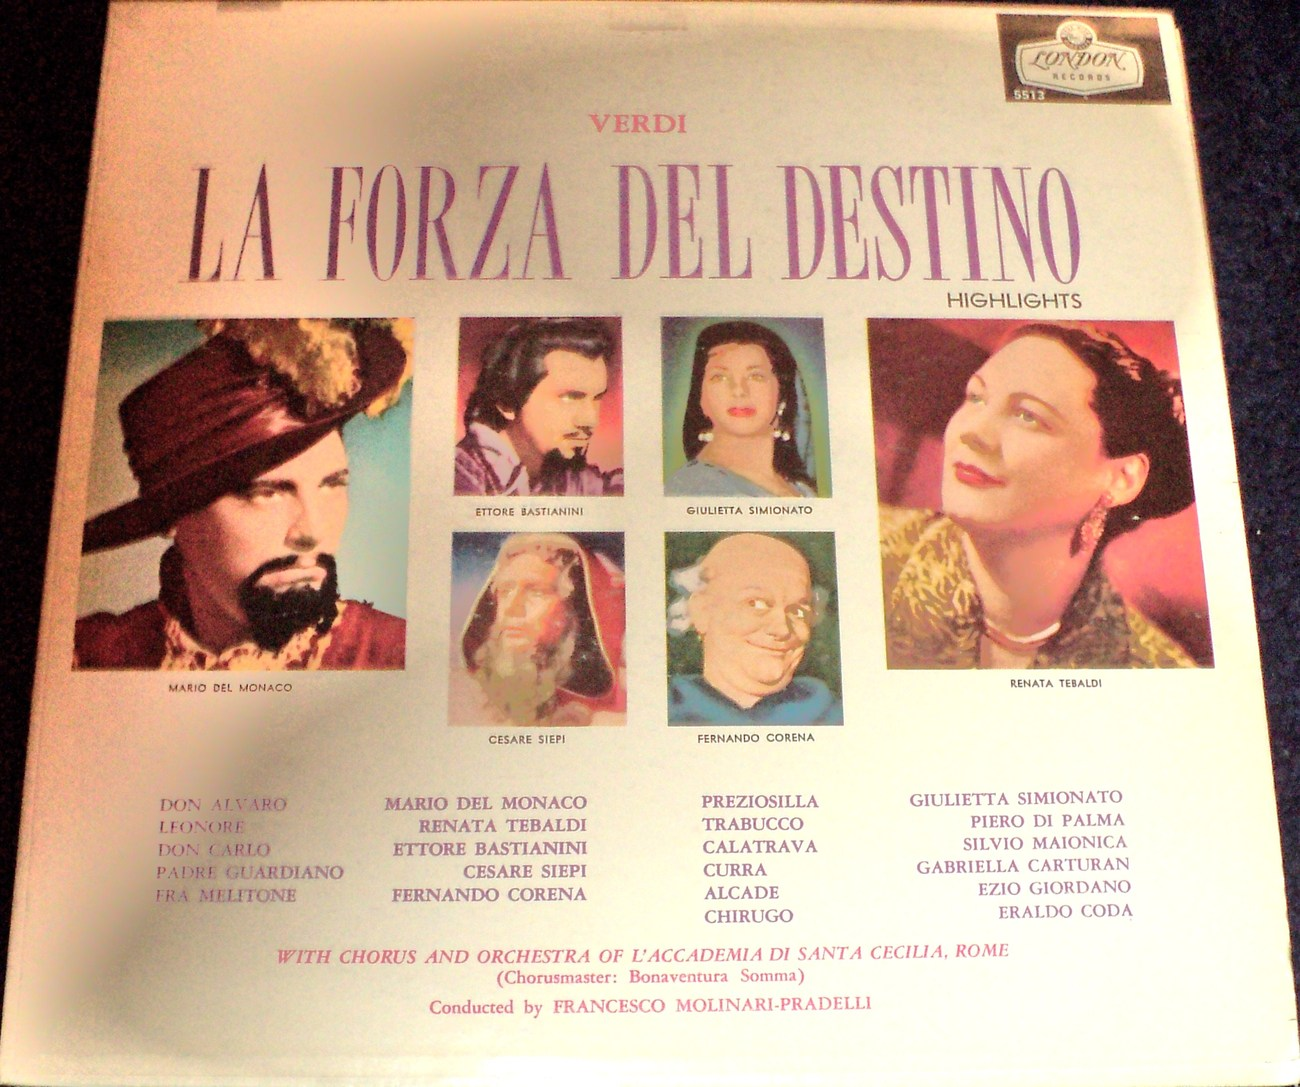 Primary image for VERDI: LA FORZA DEL DESTINO HIGHLIGHTS WITH CHORUS AND ORCHESTRA OF ACCADEMIA DI